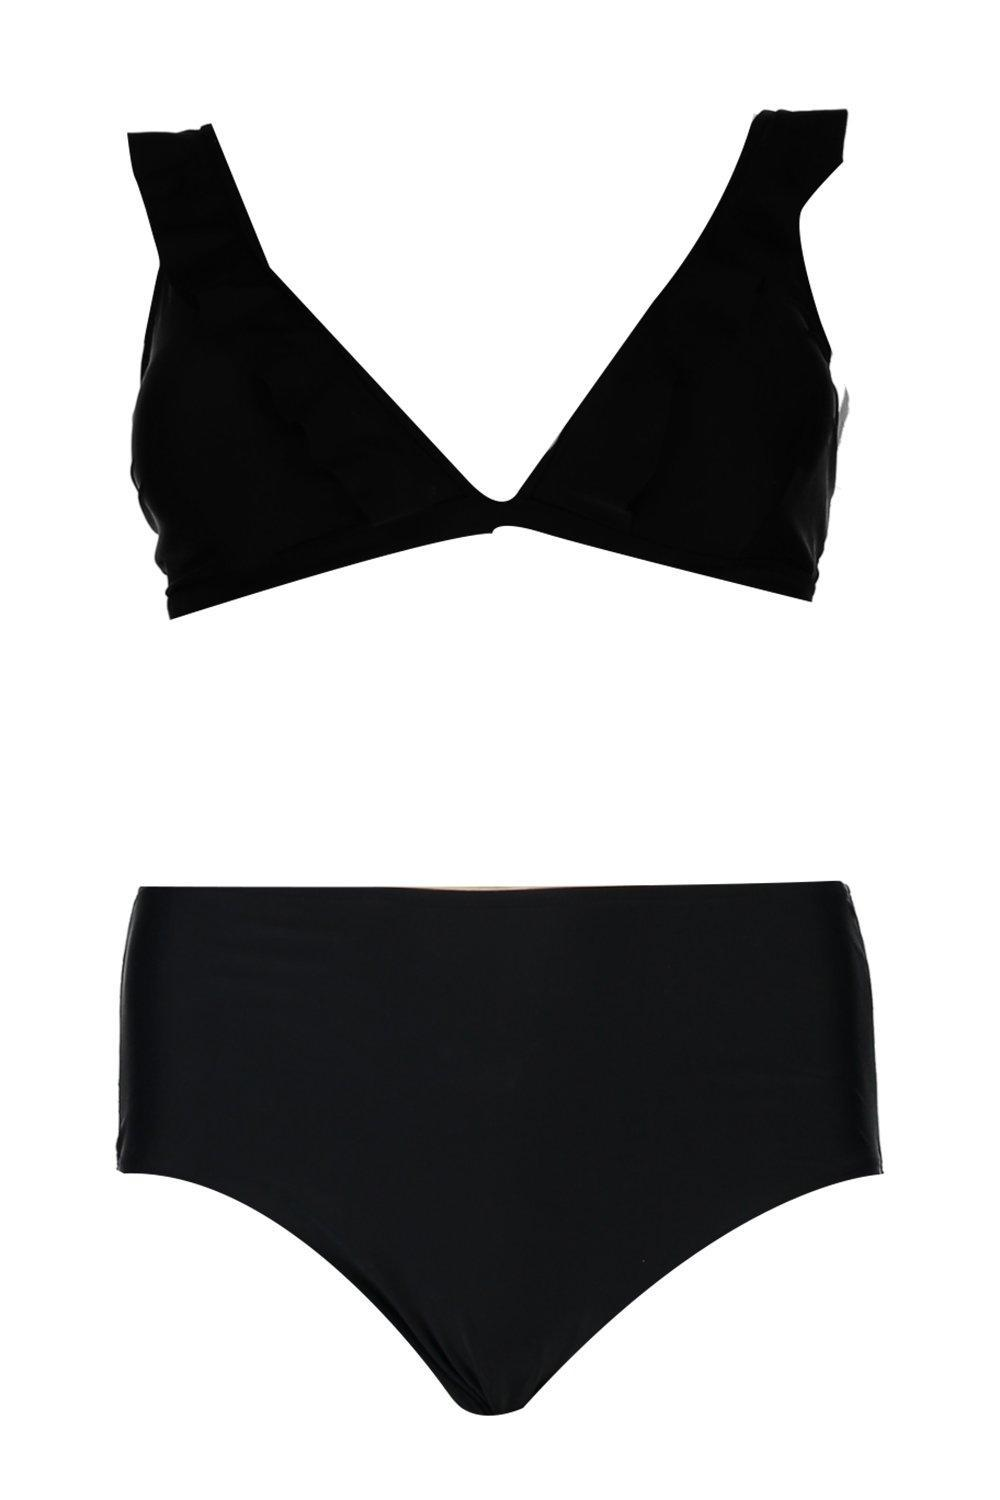 5928484f5c1 ... Frill Trim High Waist Bikini - Lyst. View fullscreen